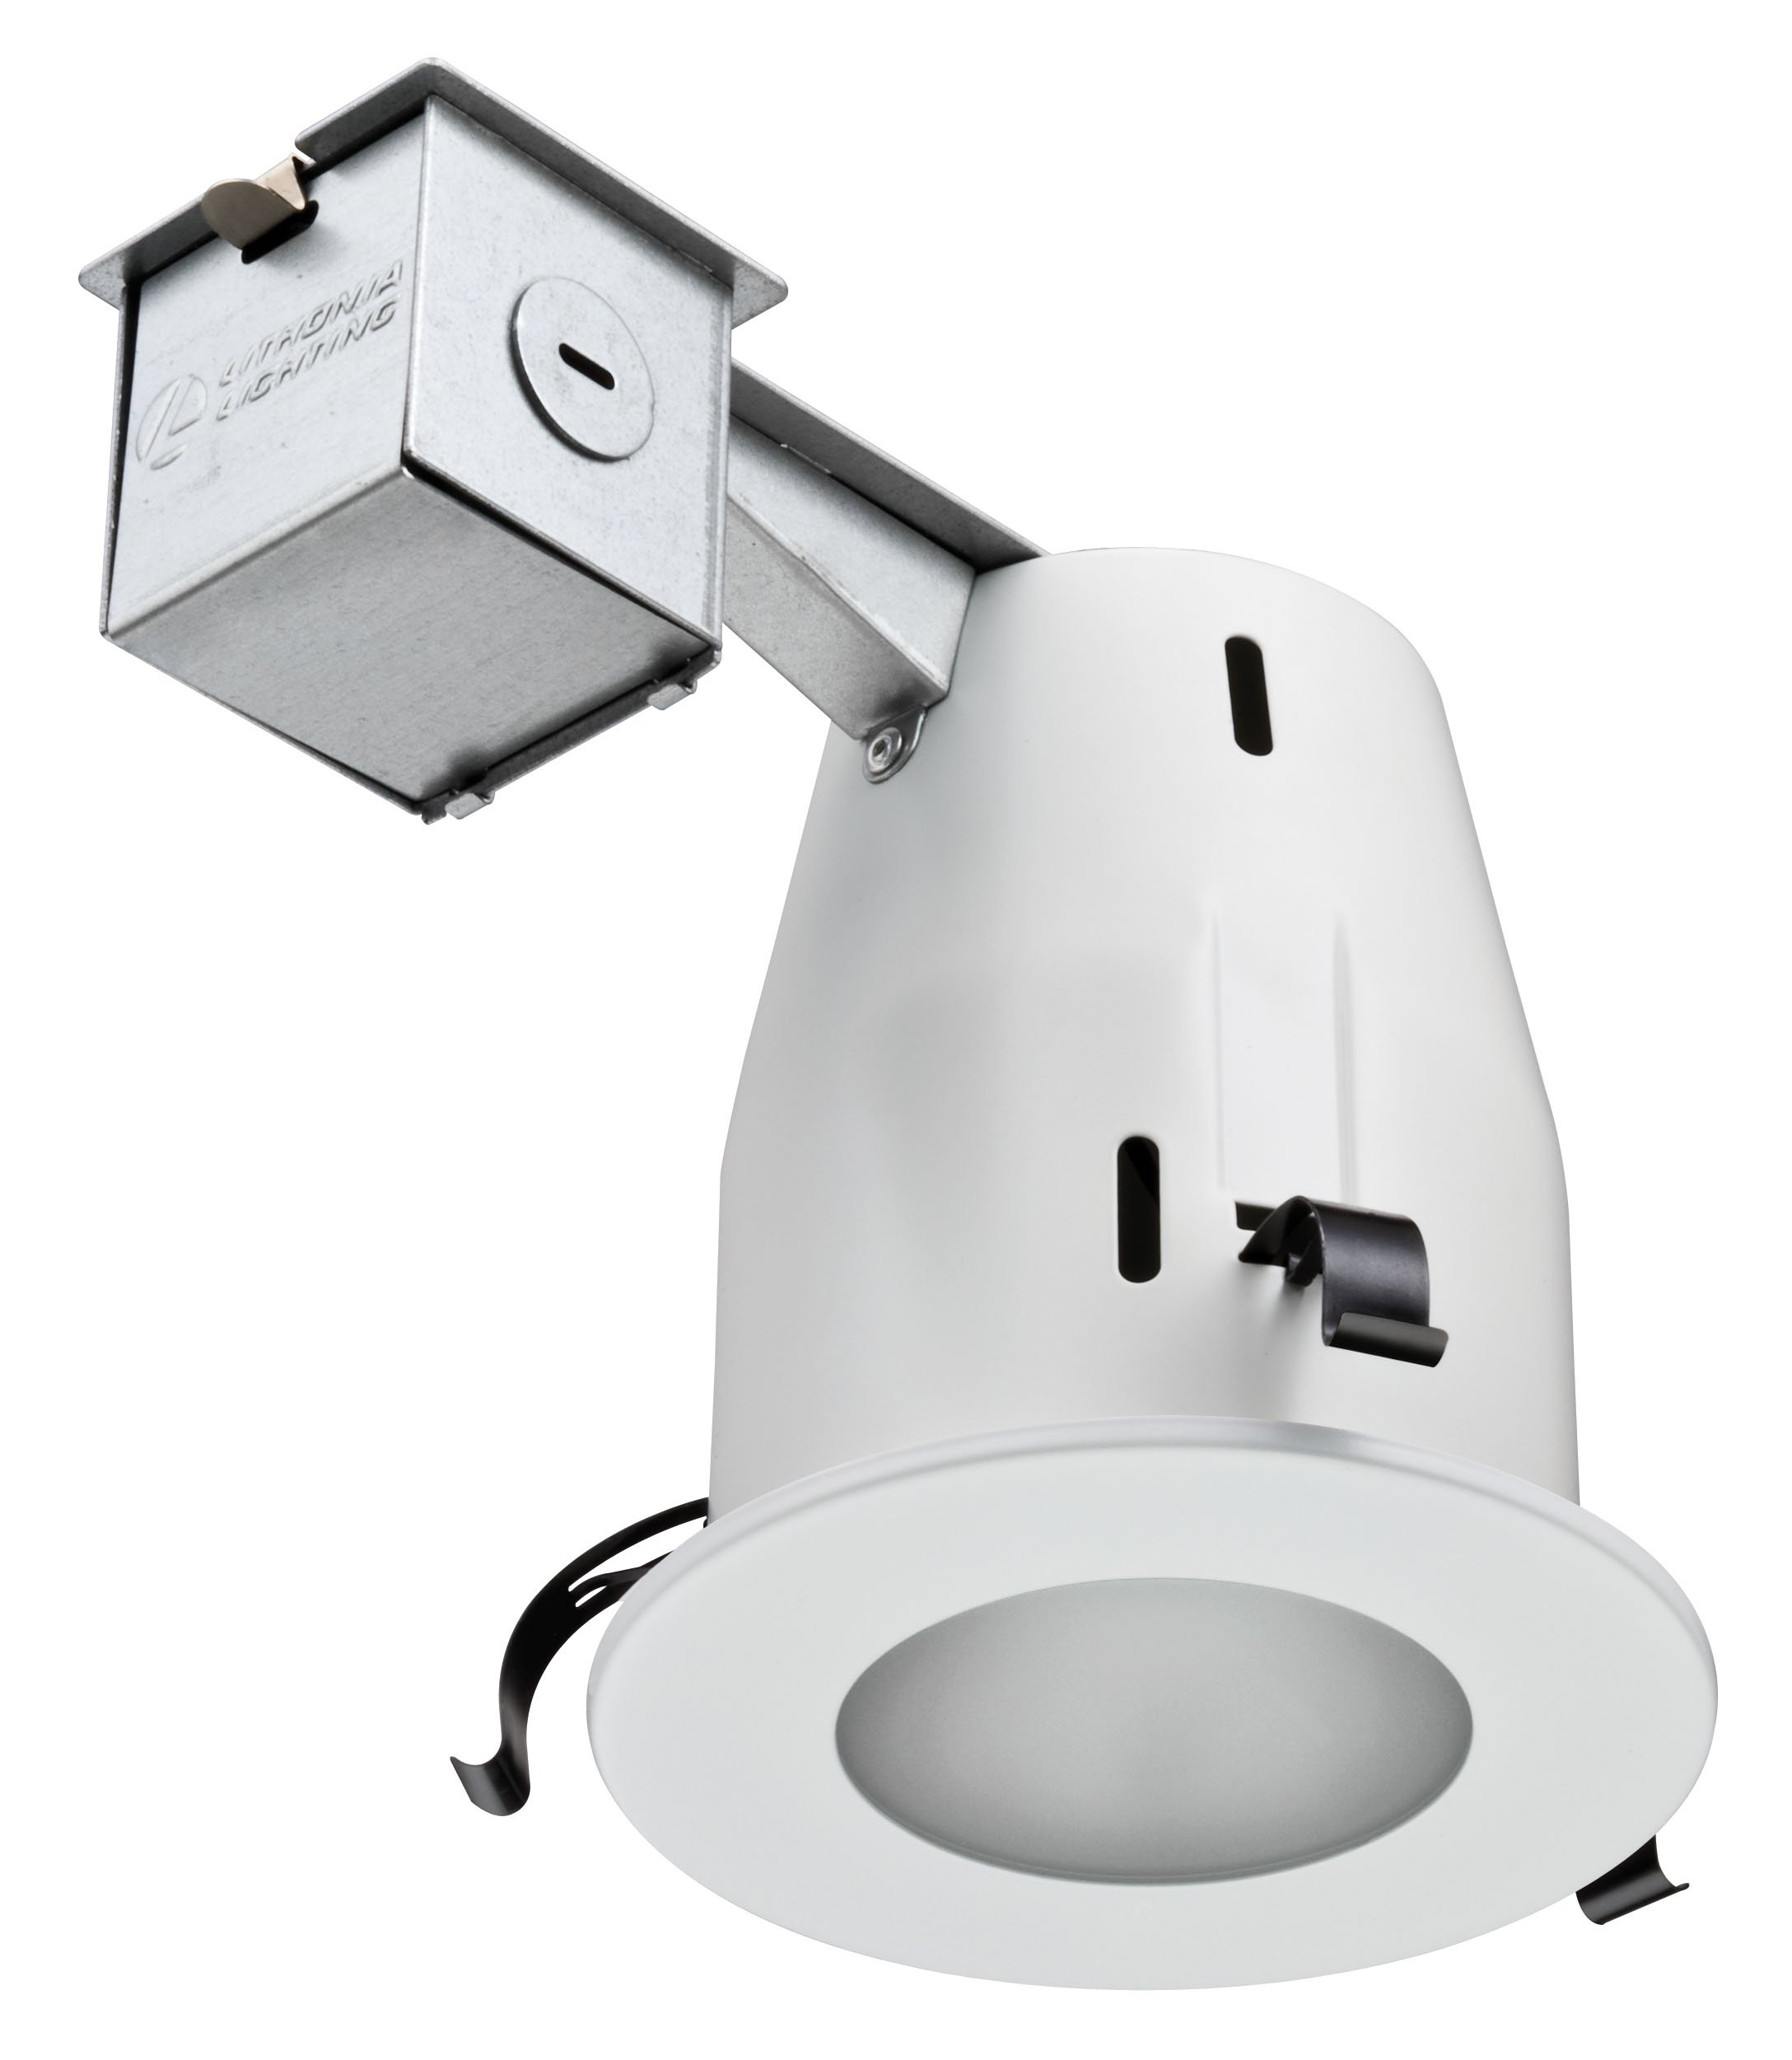 Lithonia Lighting LK4LMW M6 4 Inch Lens Kit with Halogen Lamp Included in White